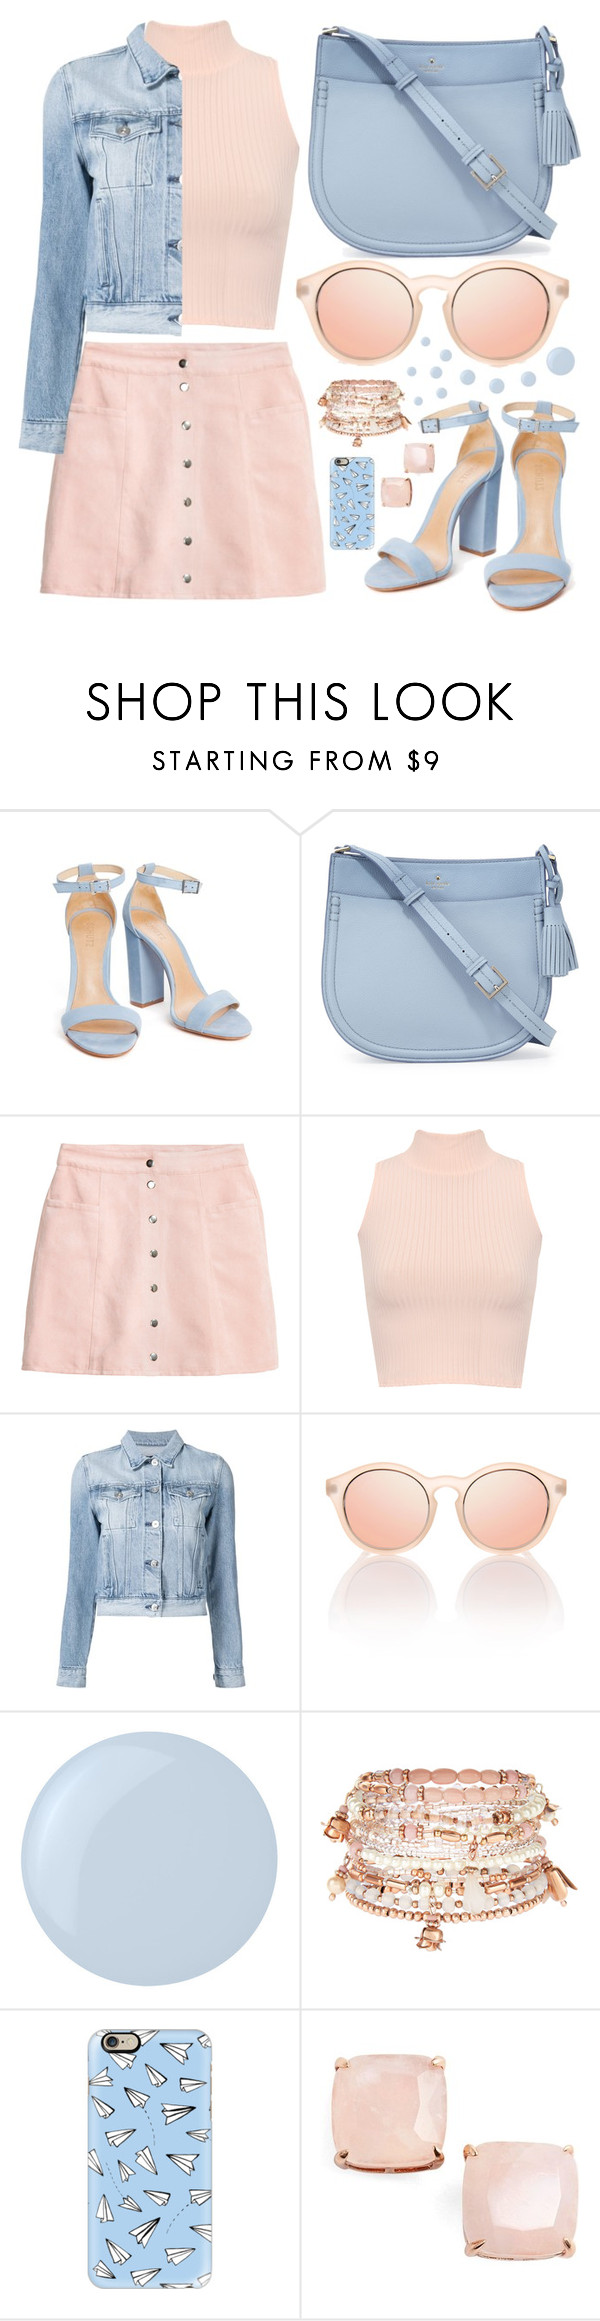 """""""...Baby blue..."""" by sanela-enter ❤ liked on Polyvore featuring Kate Spade, WearAll, 3x1, Essie, Accessorize and Casetify"""